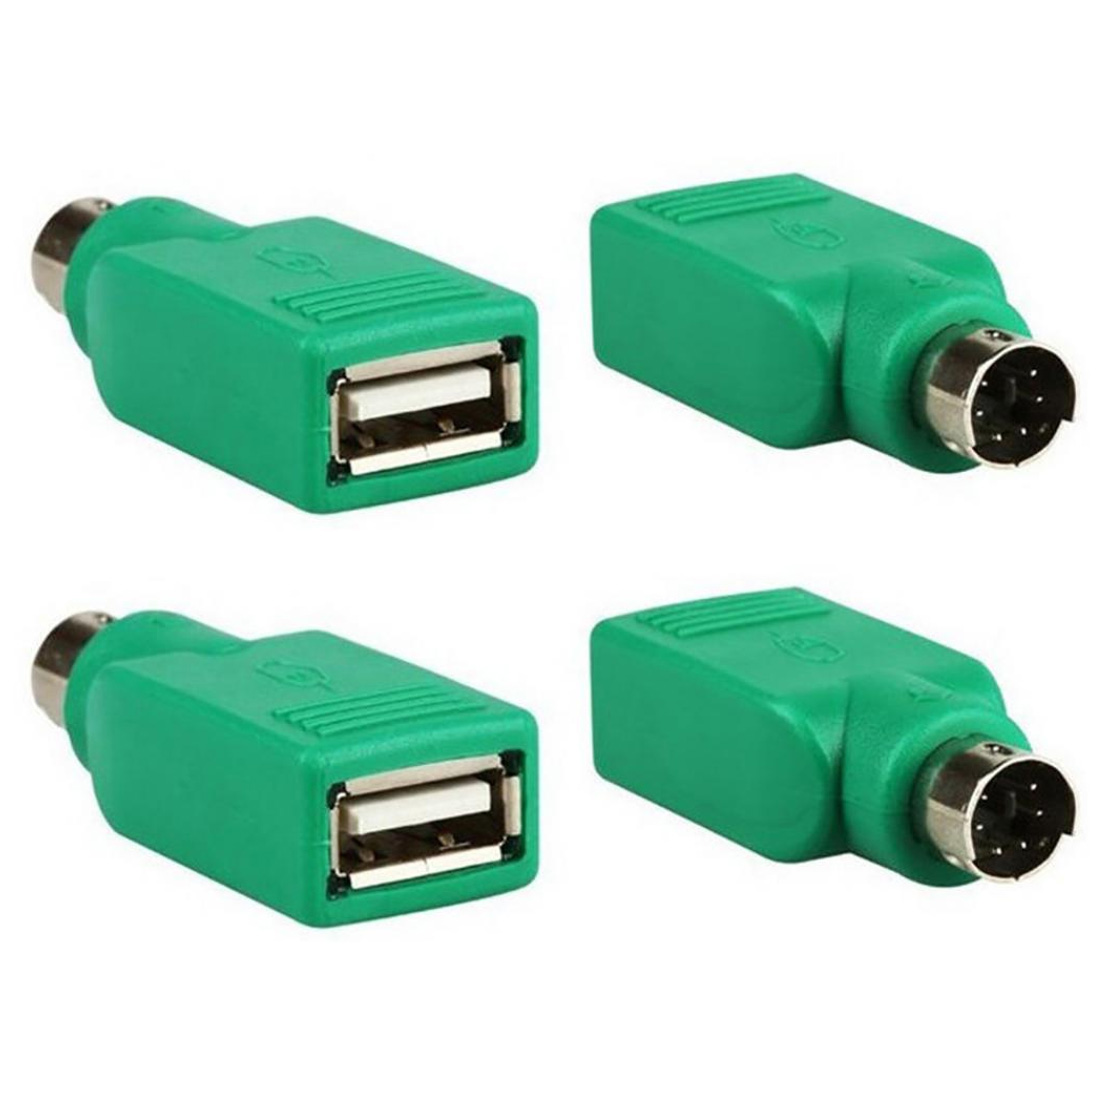 Computer Cables Connector USB Male PS/2 to USB adapter round port to U port converter USB keyboard  Adapter Converter Pakistan